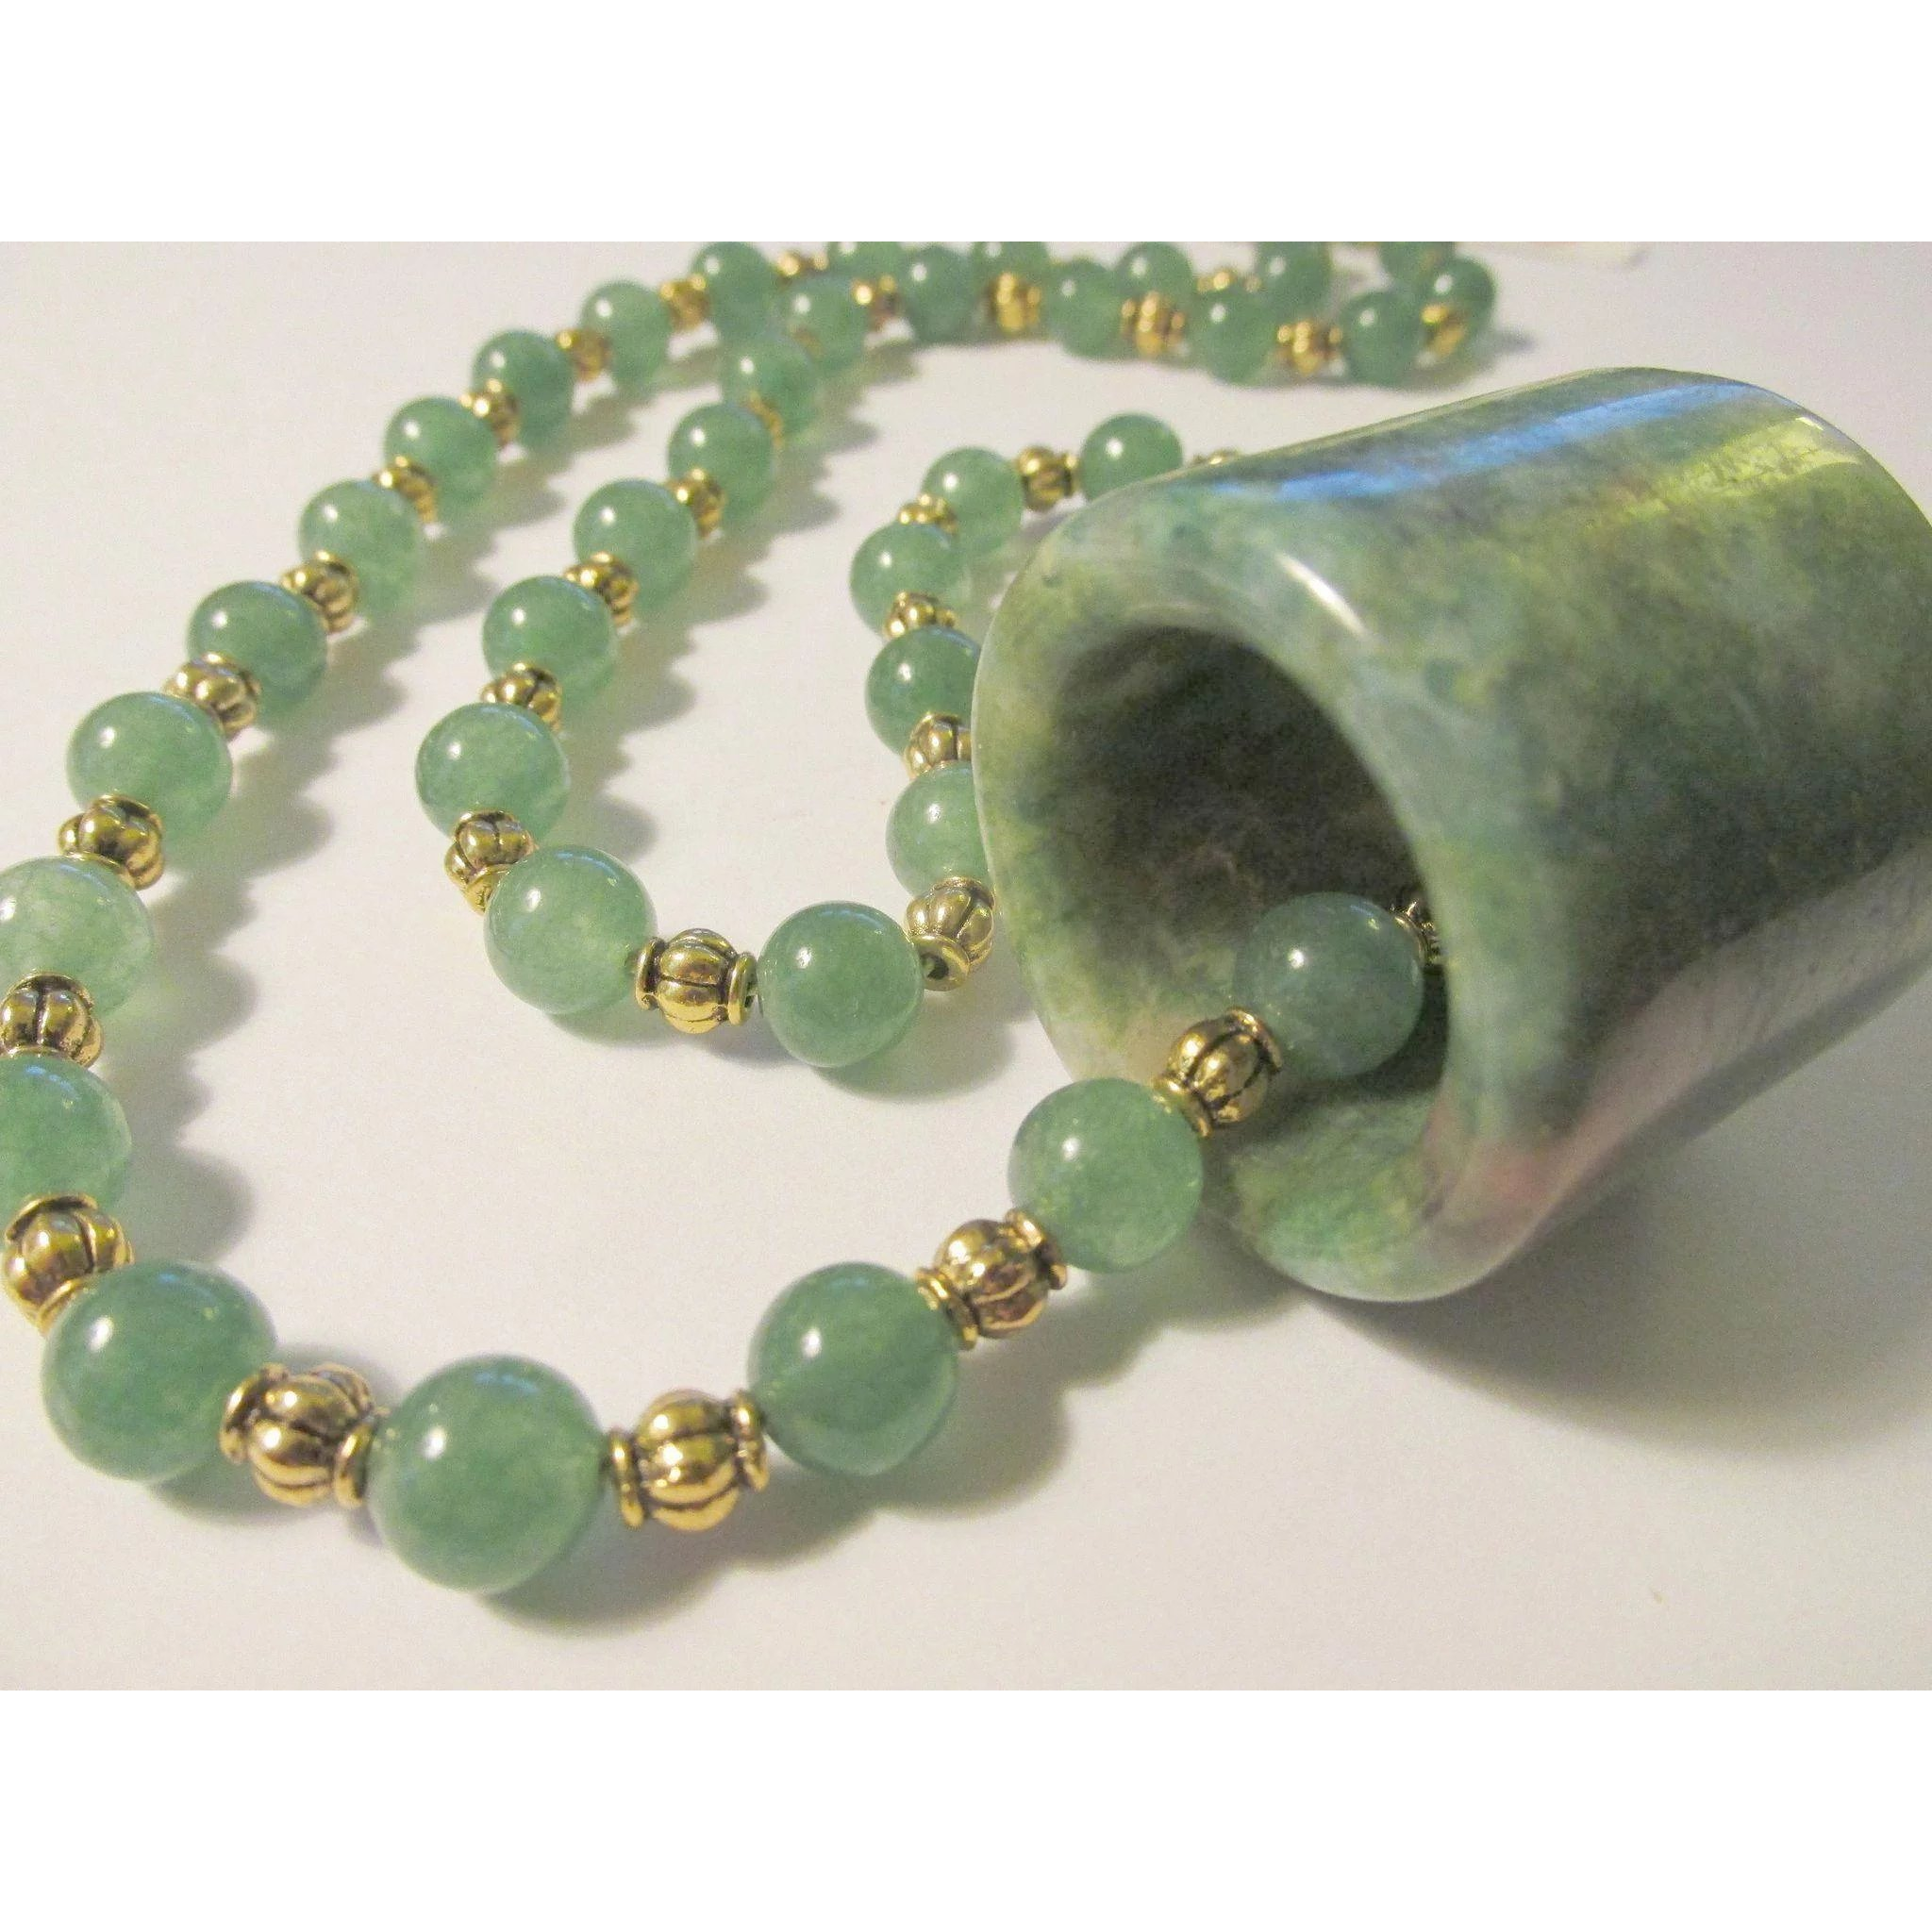 click jade full carved with water pearl item chinese natural green to peach expand bat fresh necklace